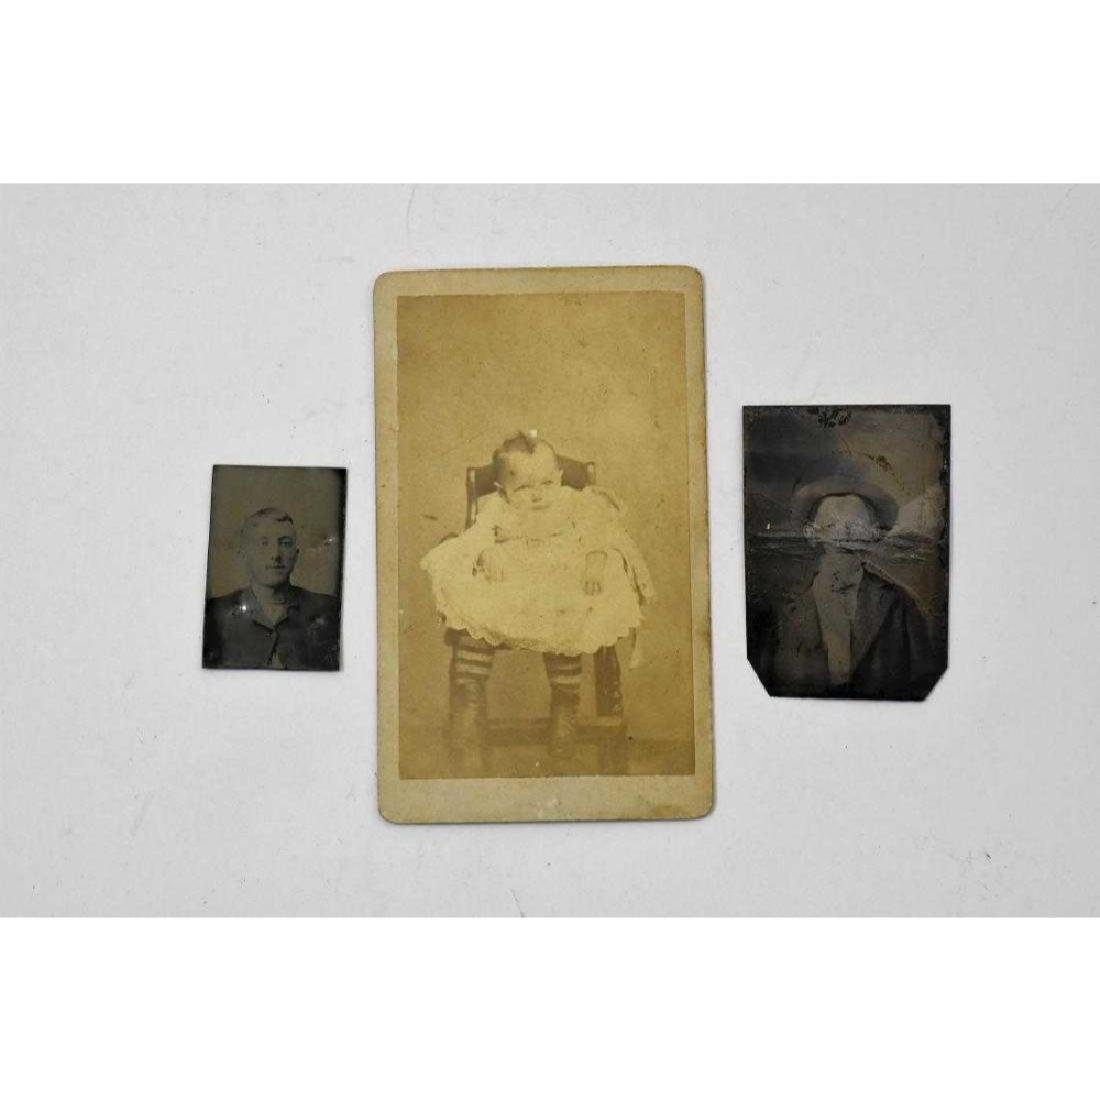 2 tintype small photos and one cabinet photo